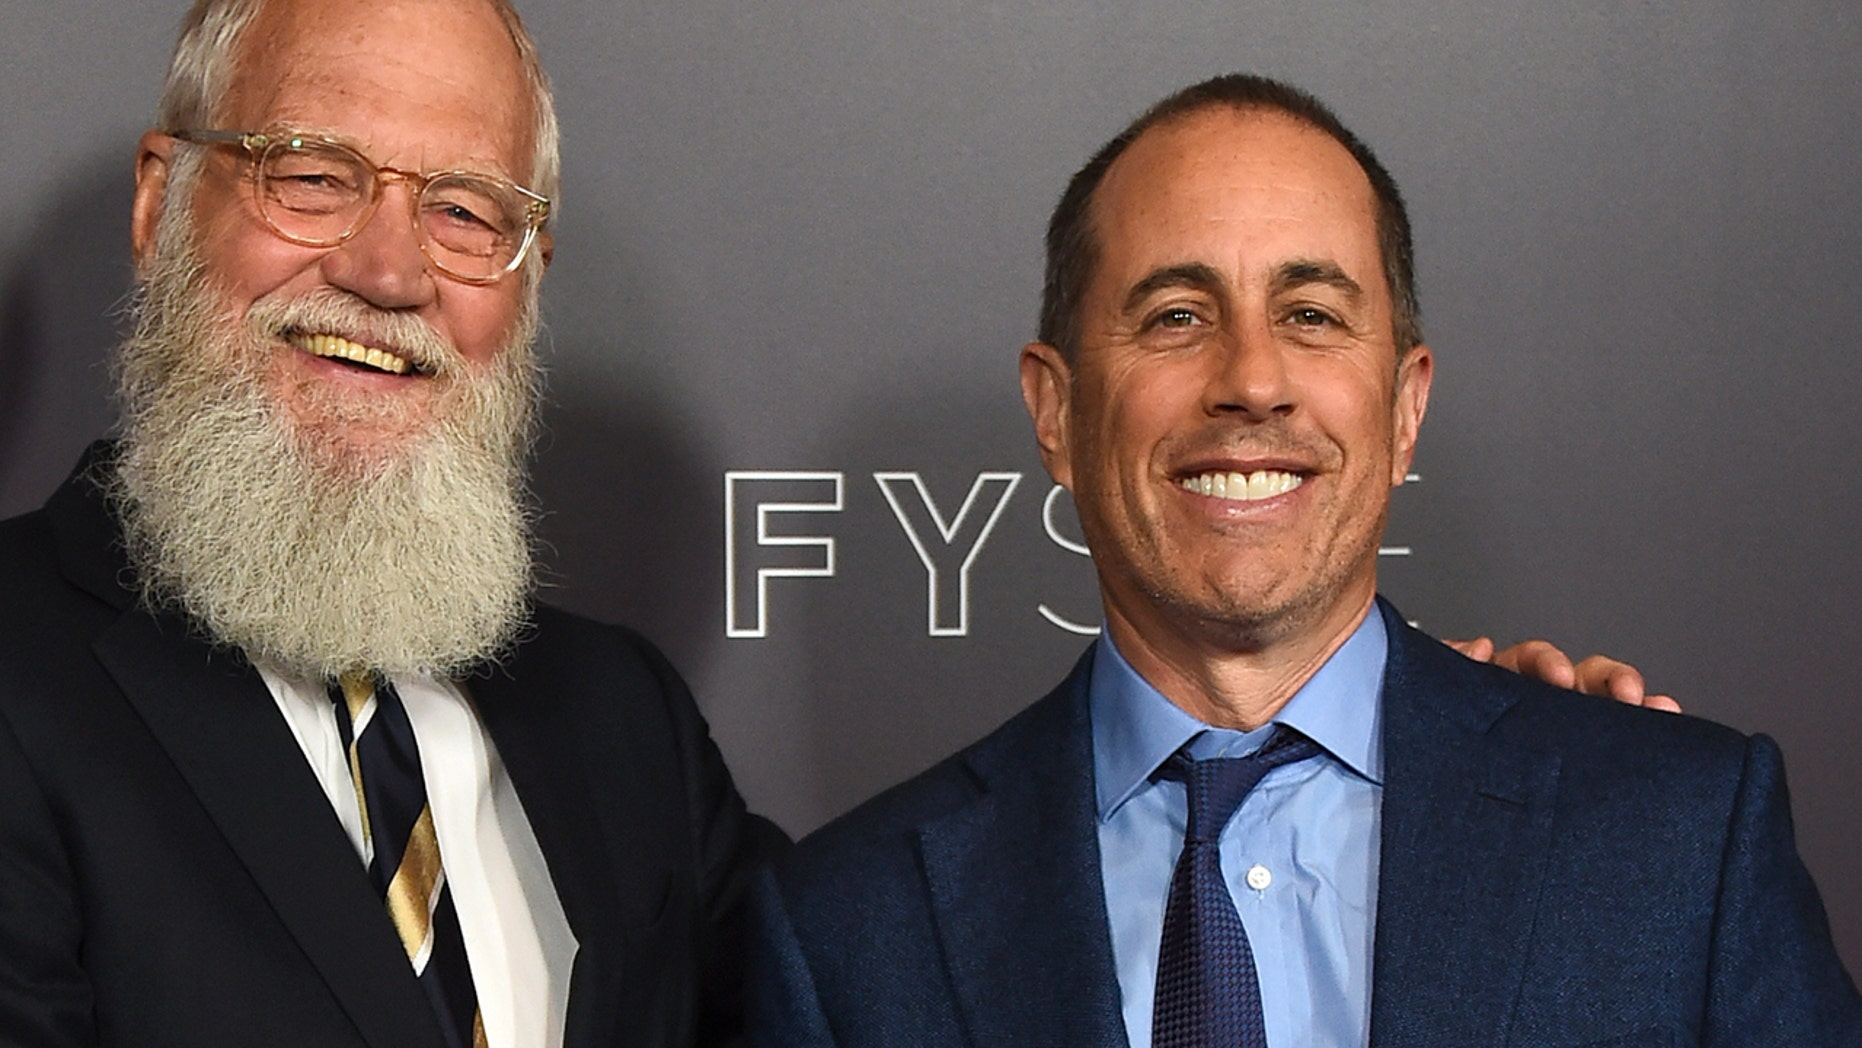 """David Letterman, left, and Jerry Seinfeld arrive at the """"My Next Guest Needs No Introduction with David Letterman"""" FYC event."""